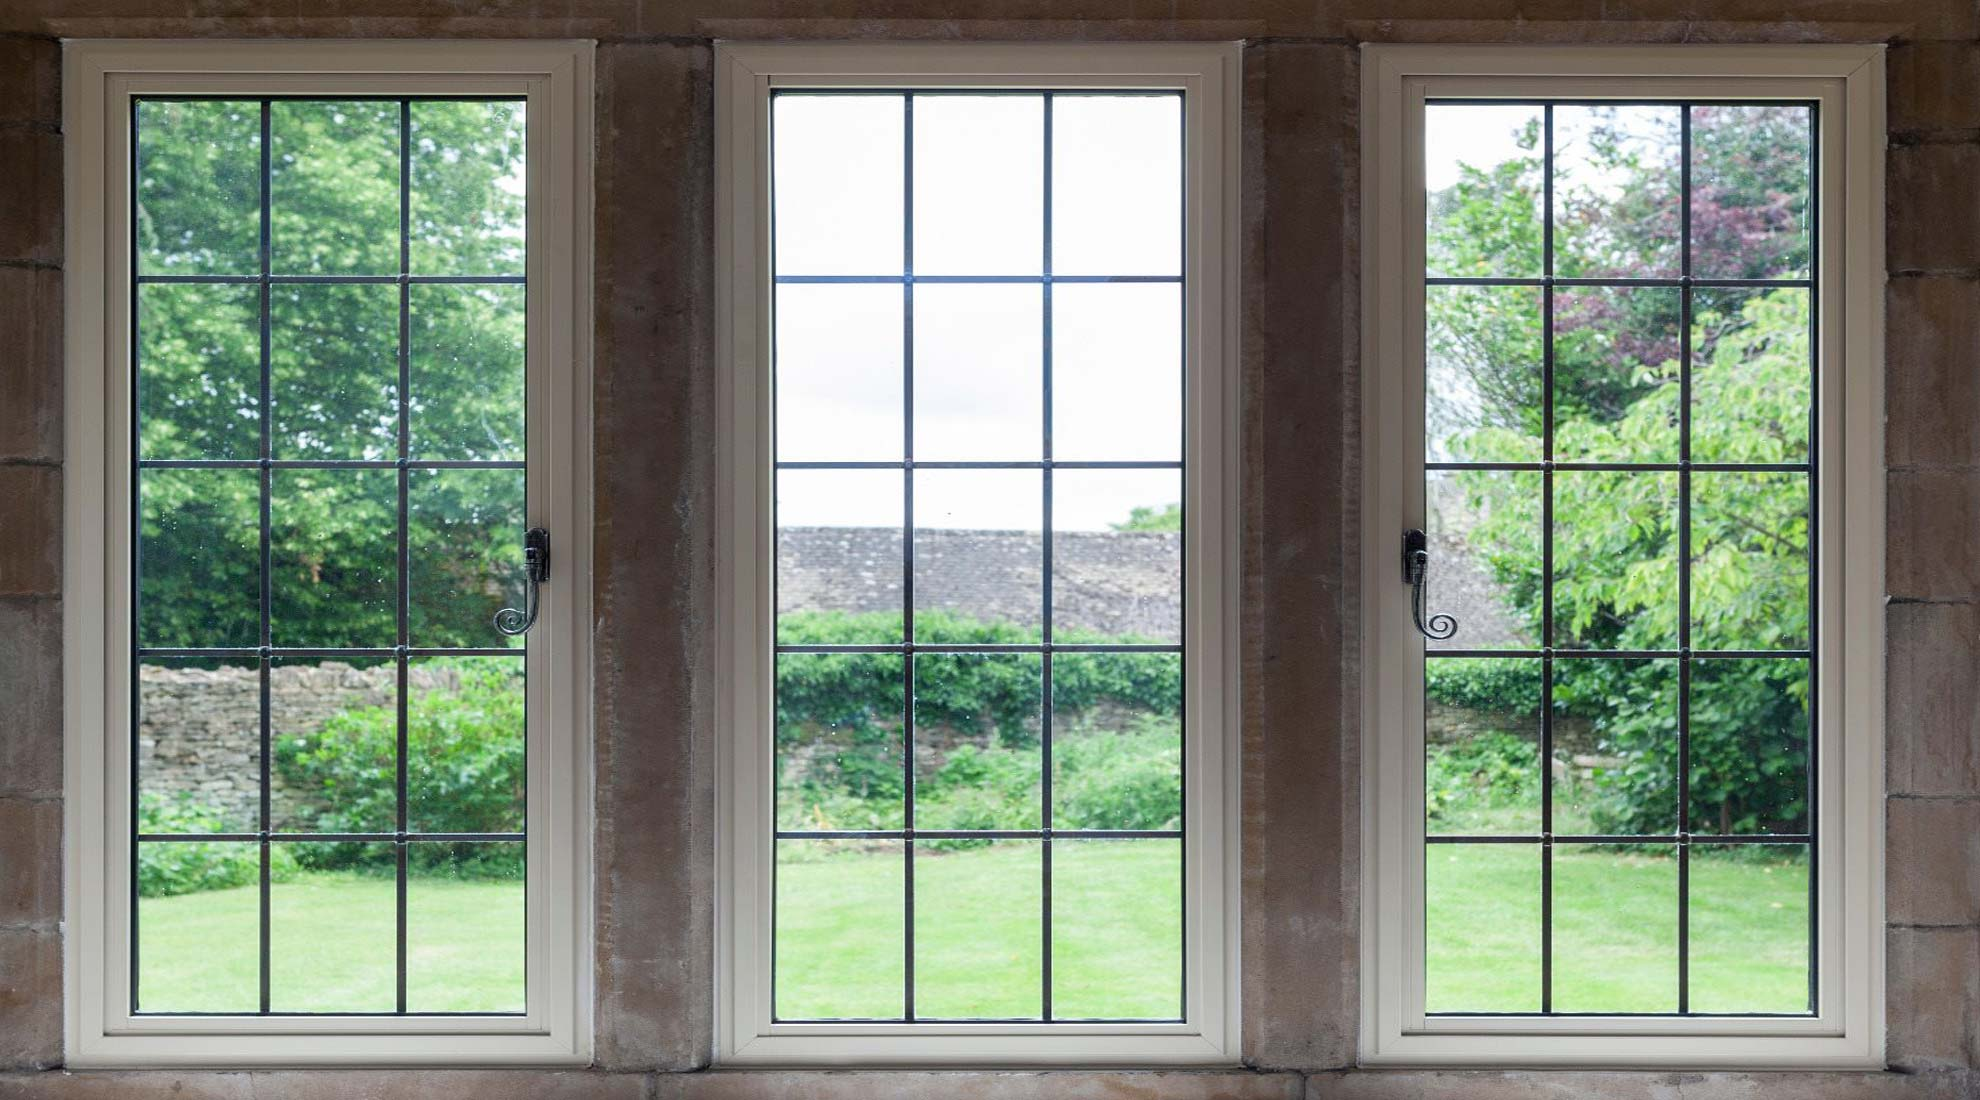 cream heritage windows outlooking the garden